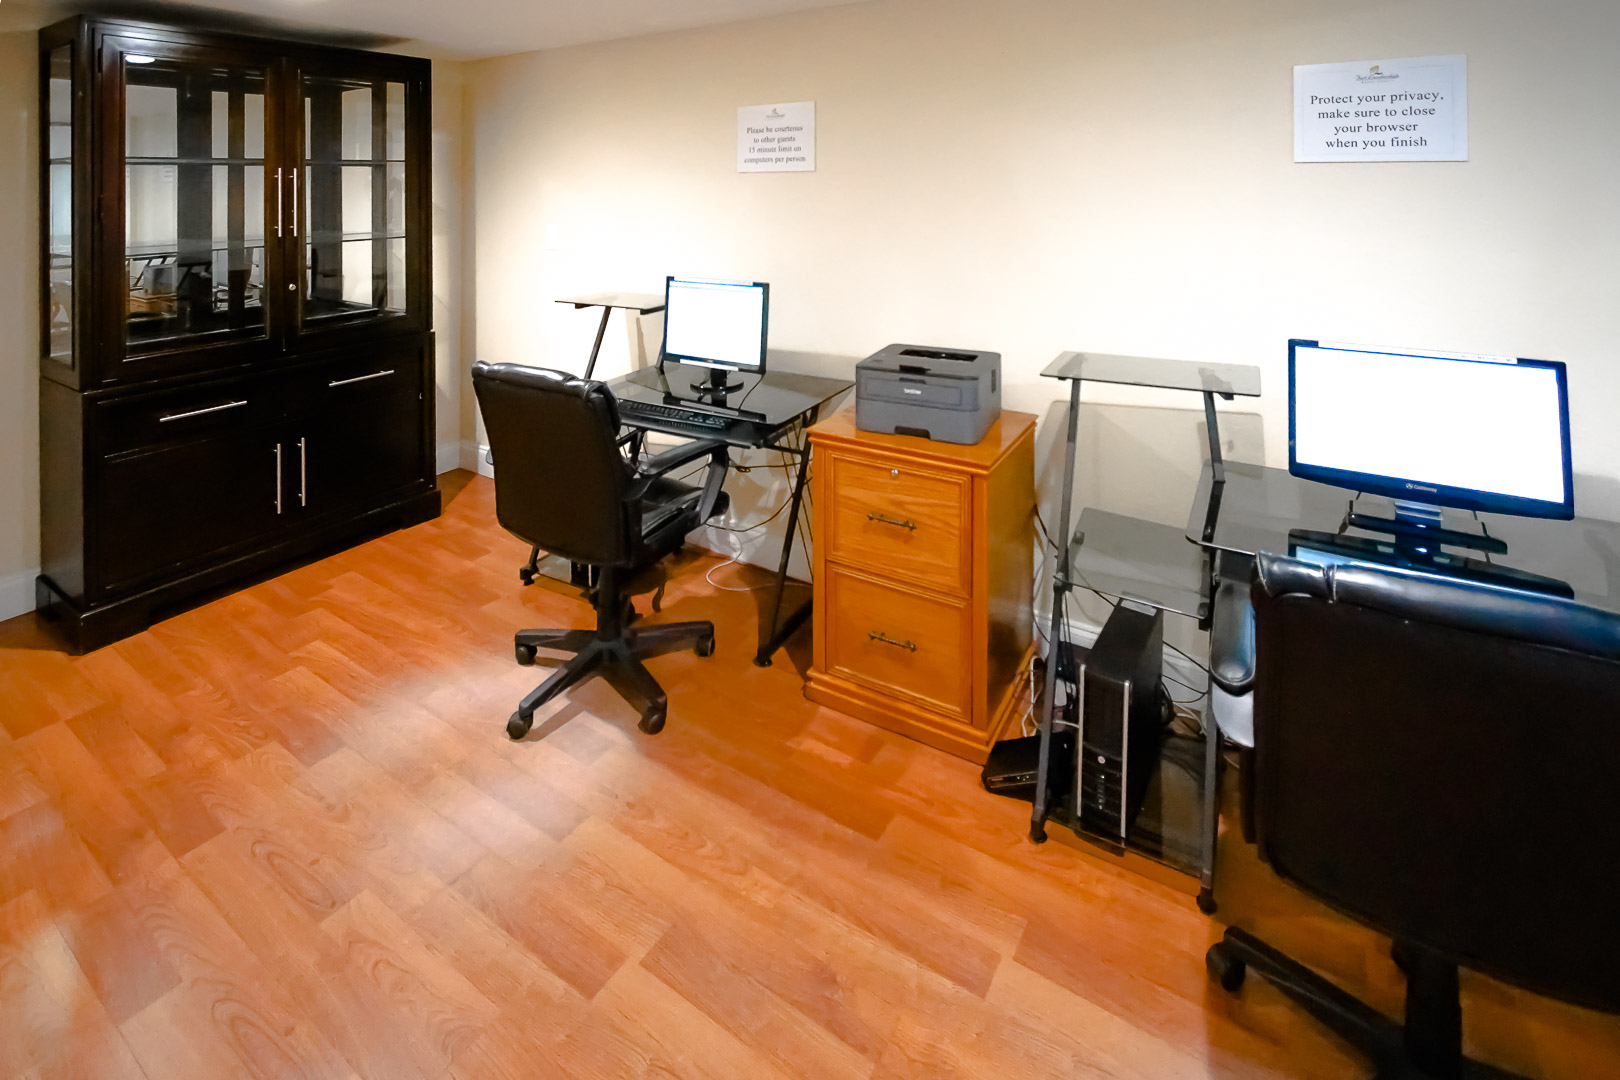 A computer room at VRI's Ft. Lauderdale Beach Resort in Florida.